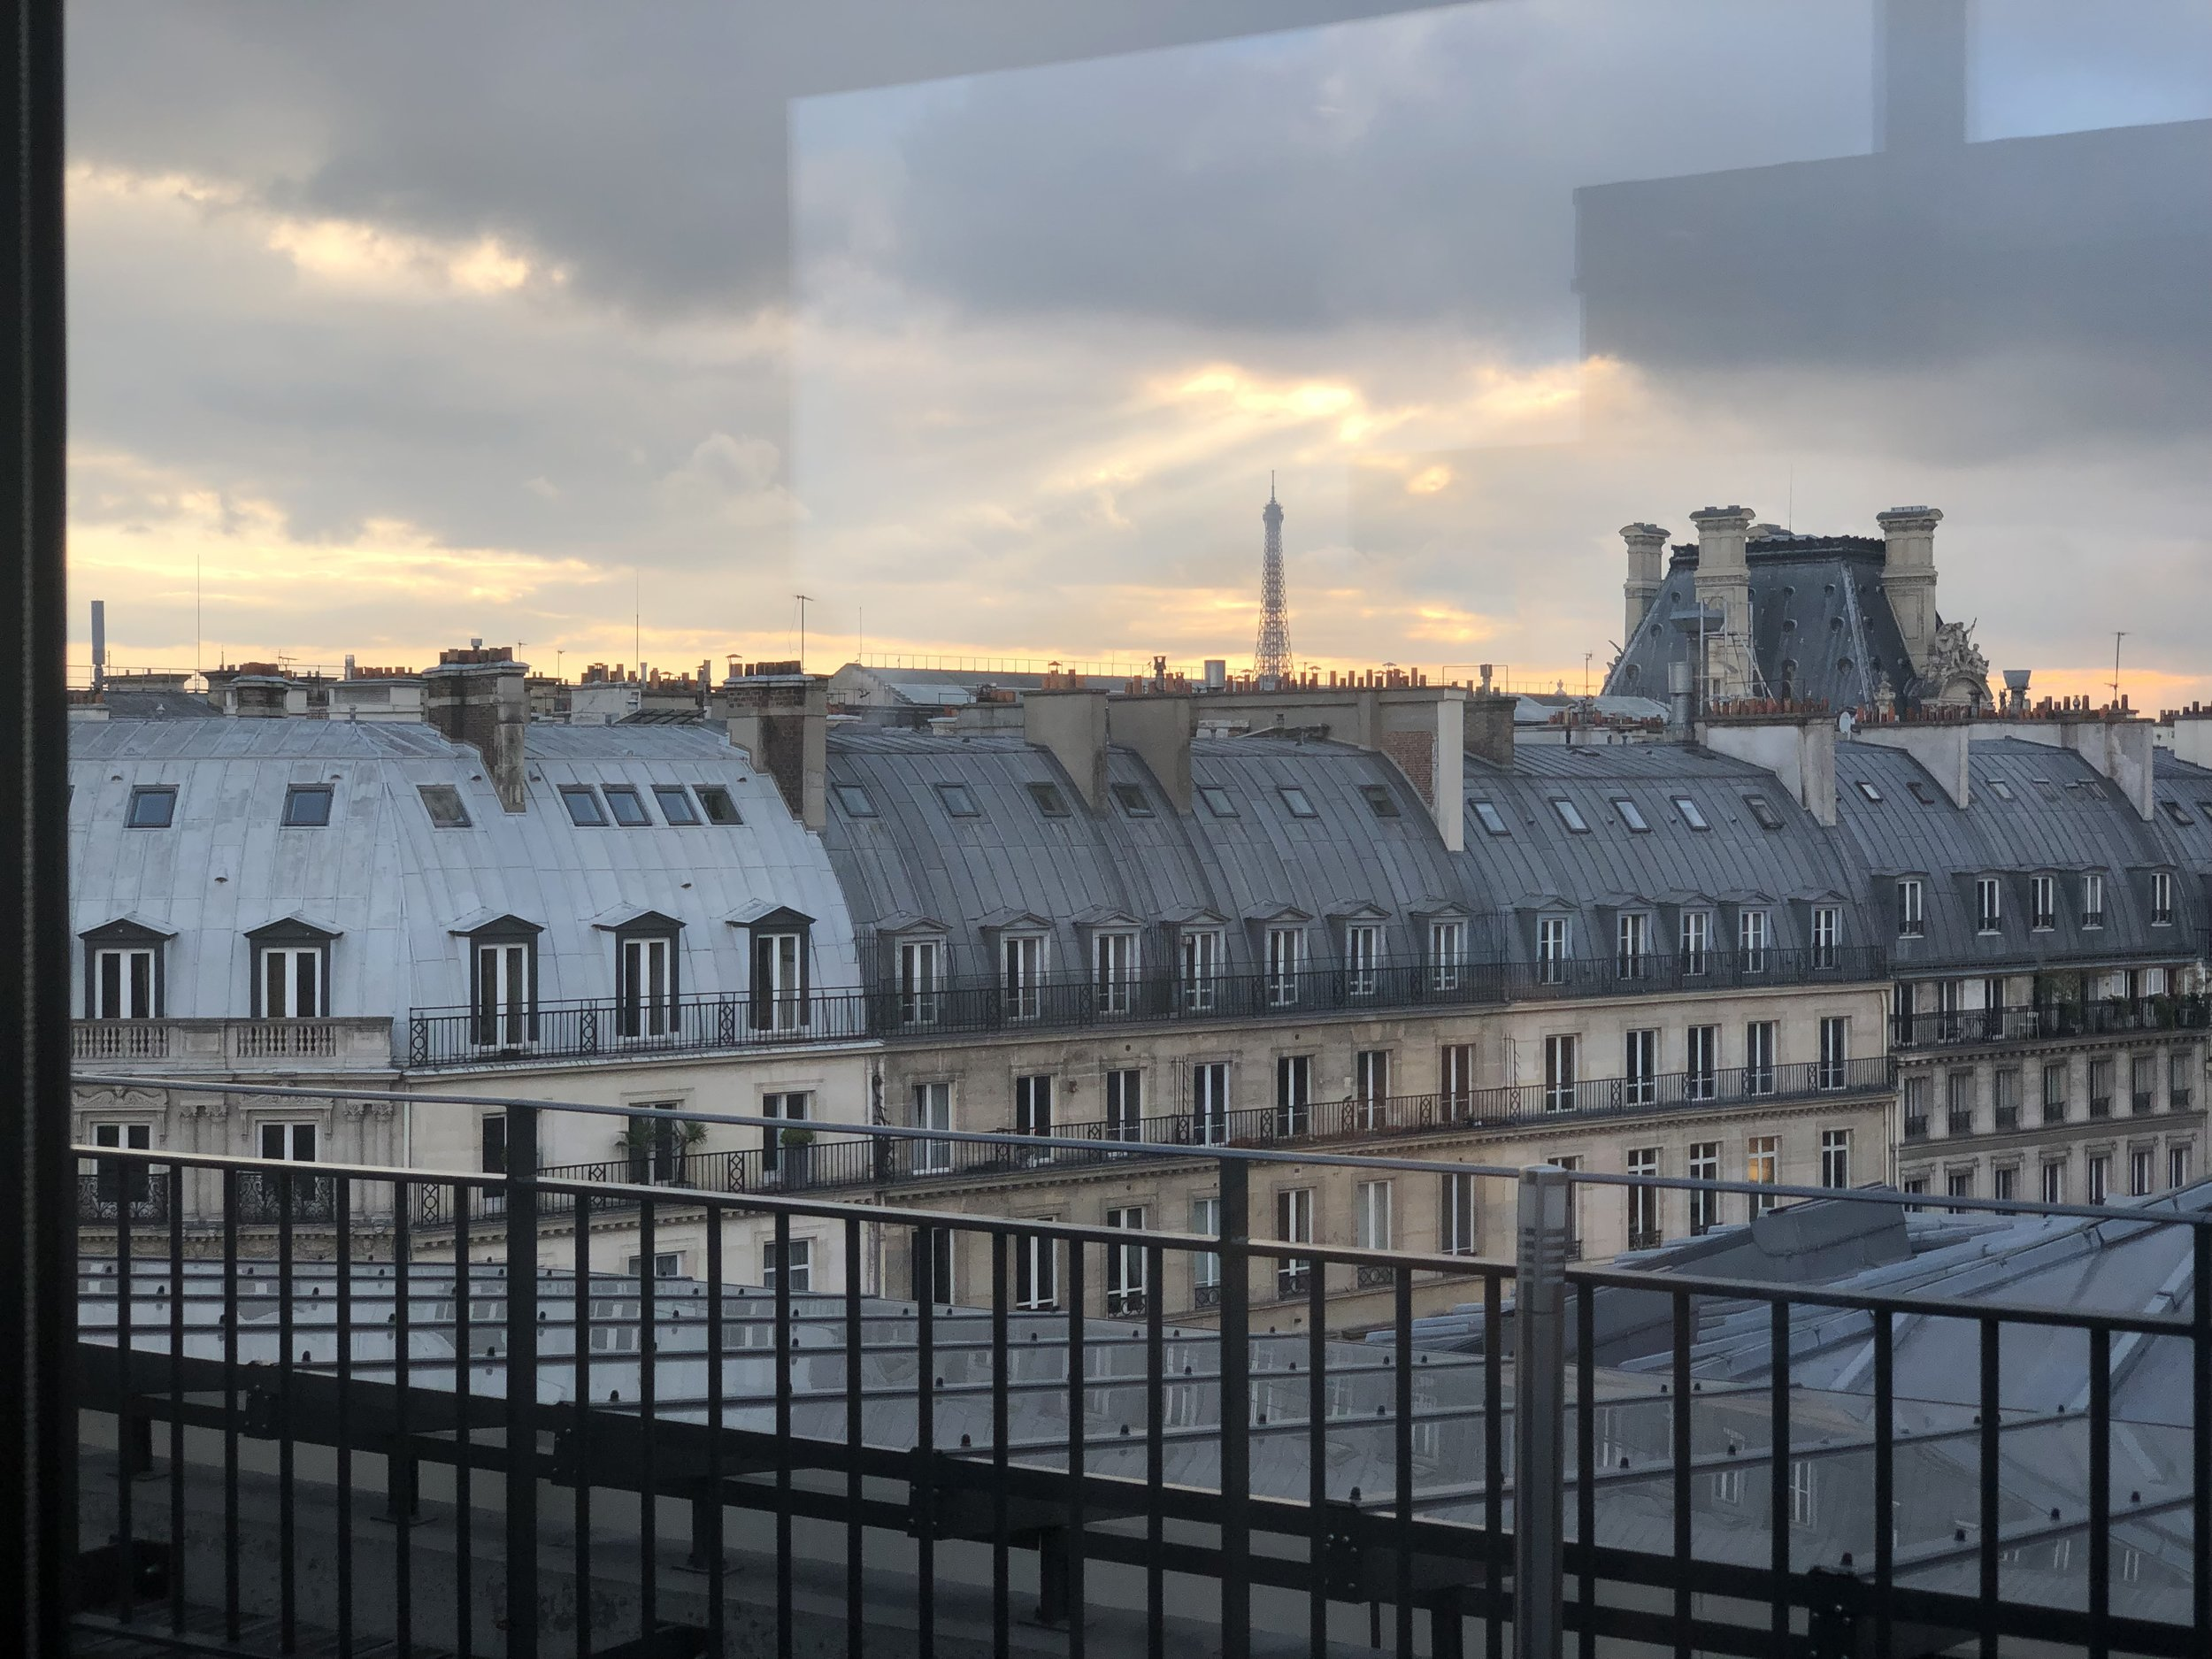 View from the rear of the modernised extension of the Comédie-Française overlooking the Palais-Royal located in the 1st arrondissement